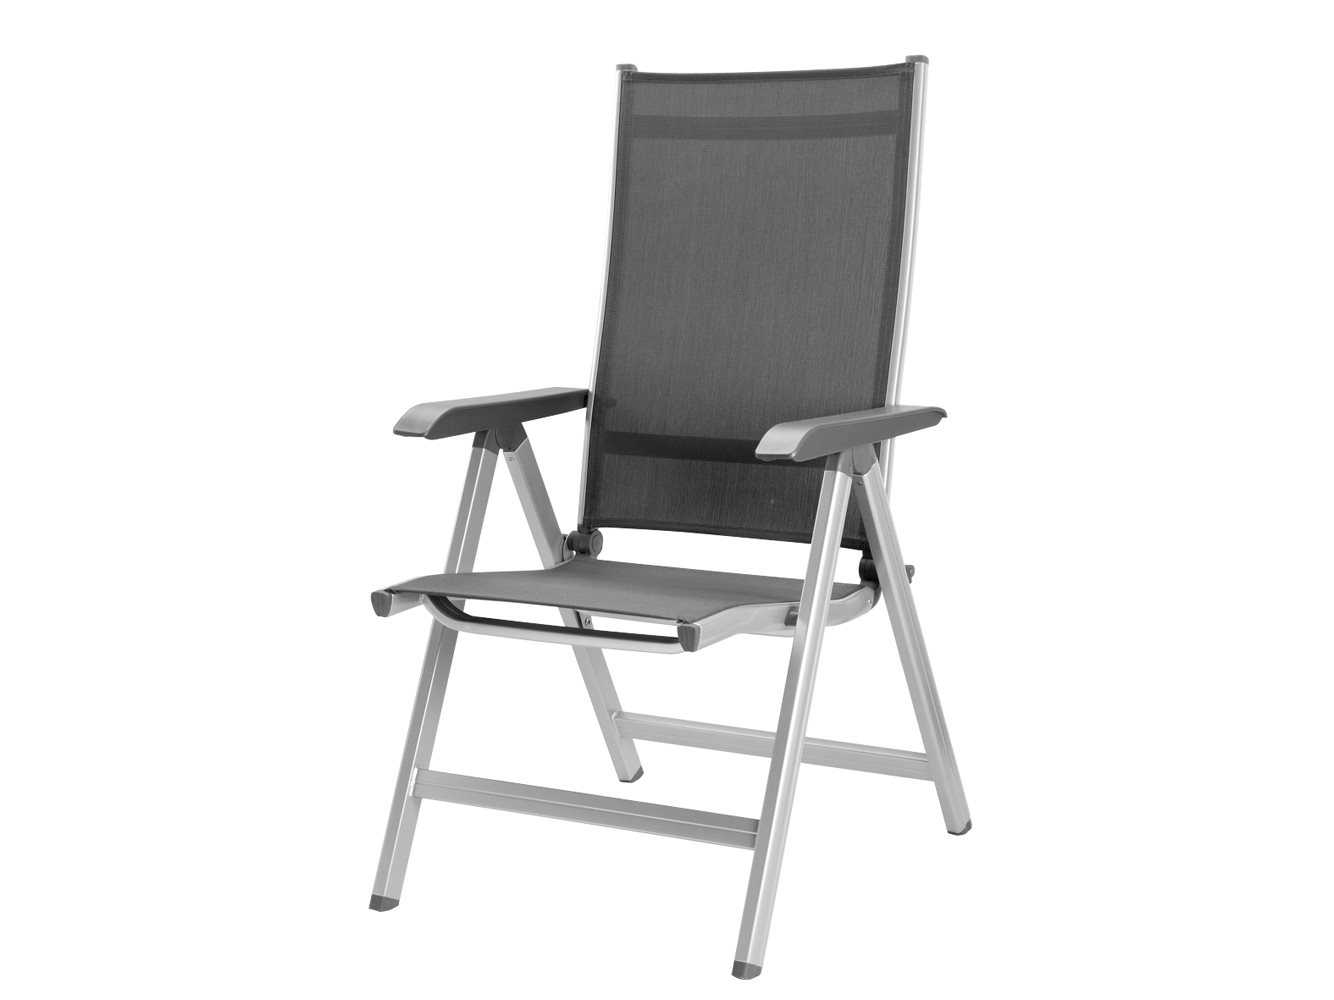 Kettler Basic Plus Multi Position Arm Chair 301201 0000